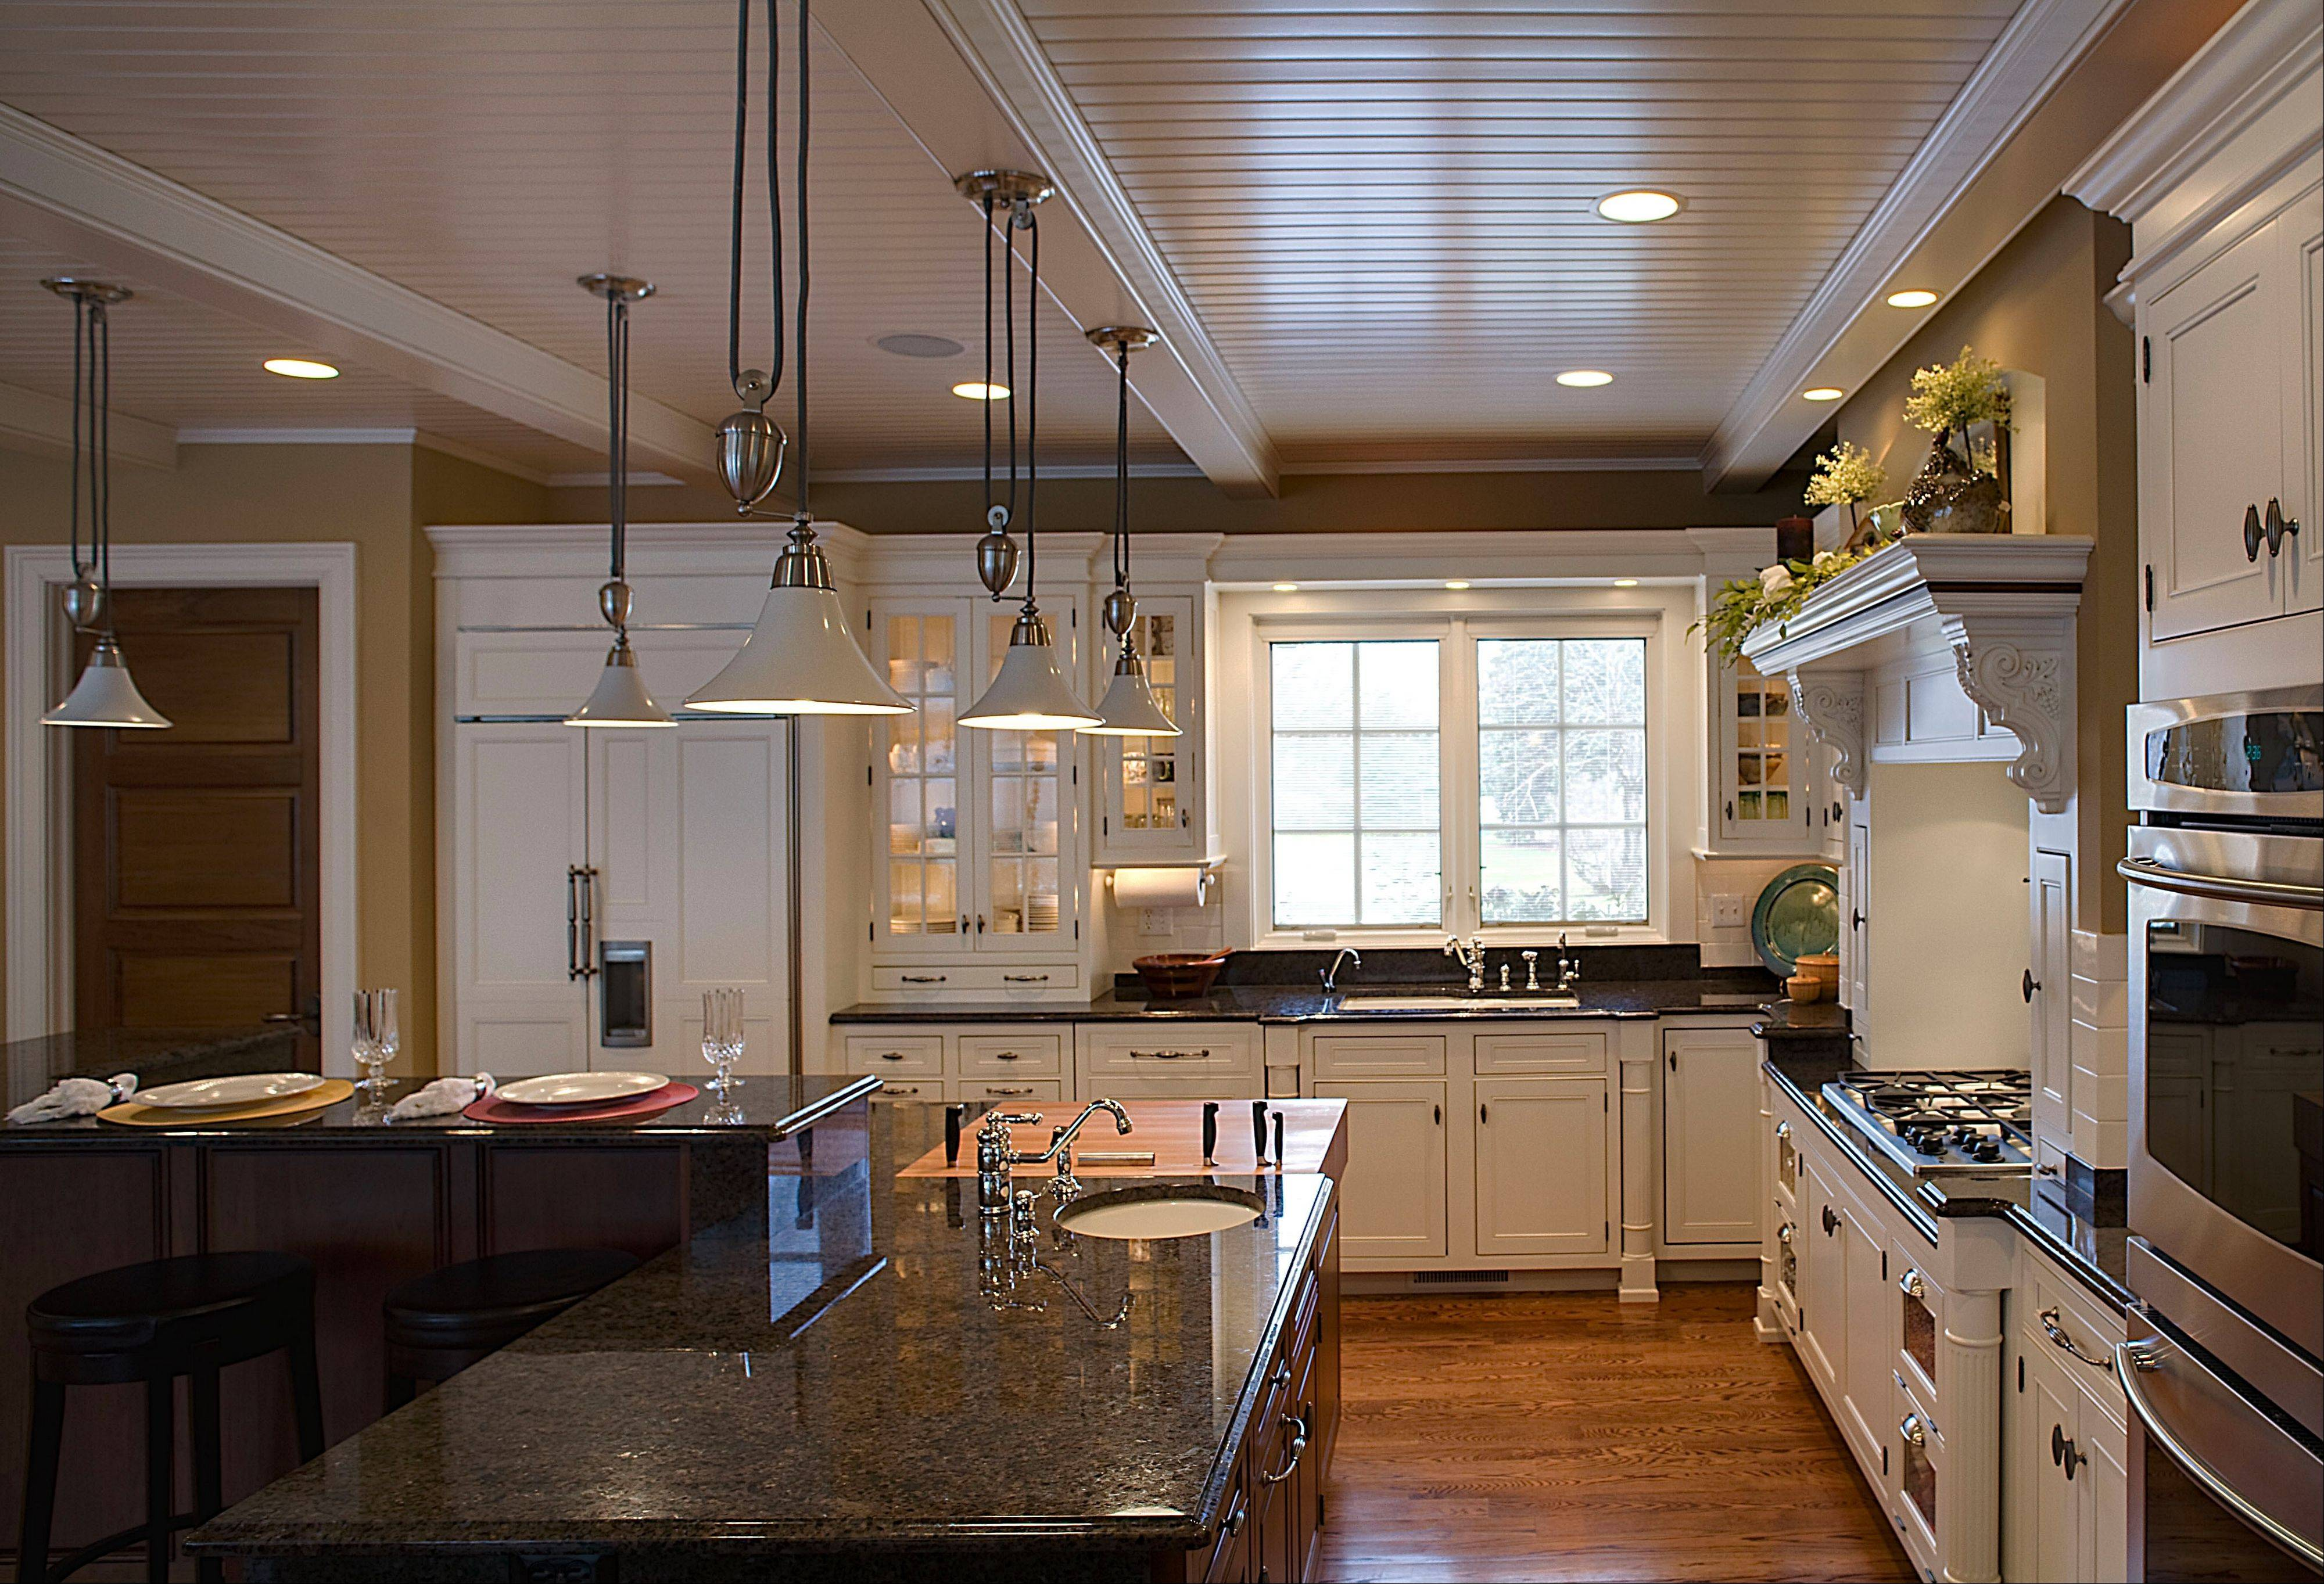 Today's larger, modern kitchens often feature a breakfast bar, a cooktop separate from ovens and furniture-quality cabinetry with lighting.